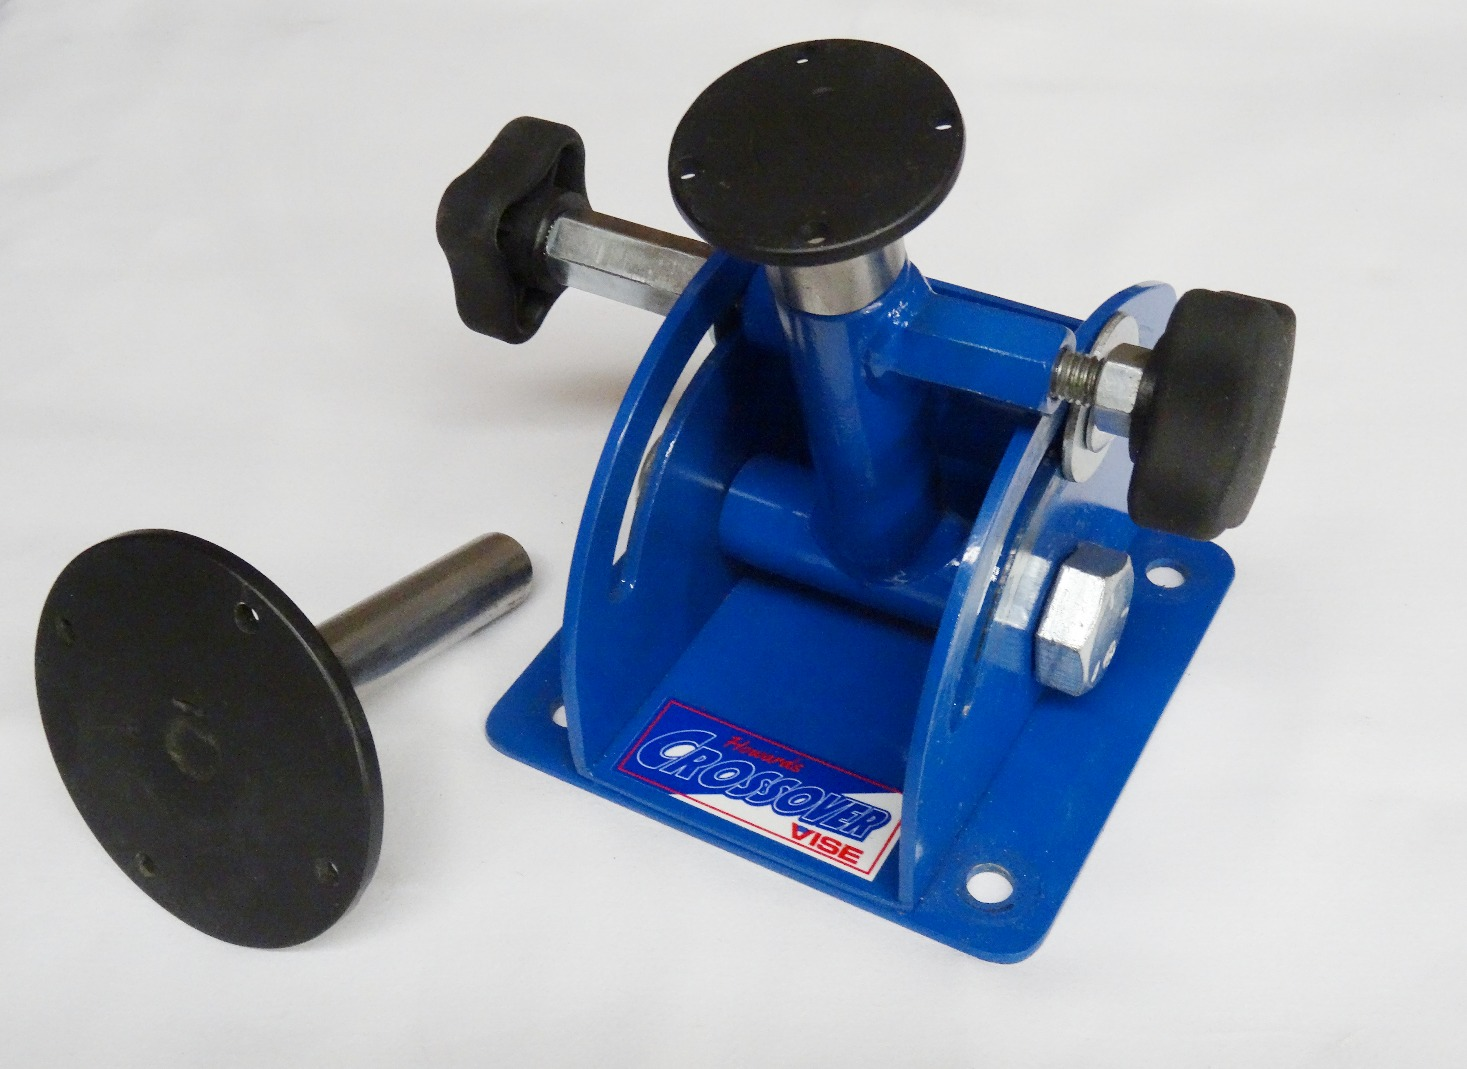 Crossover Vise Jr with Attm 01932